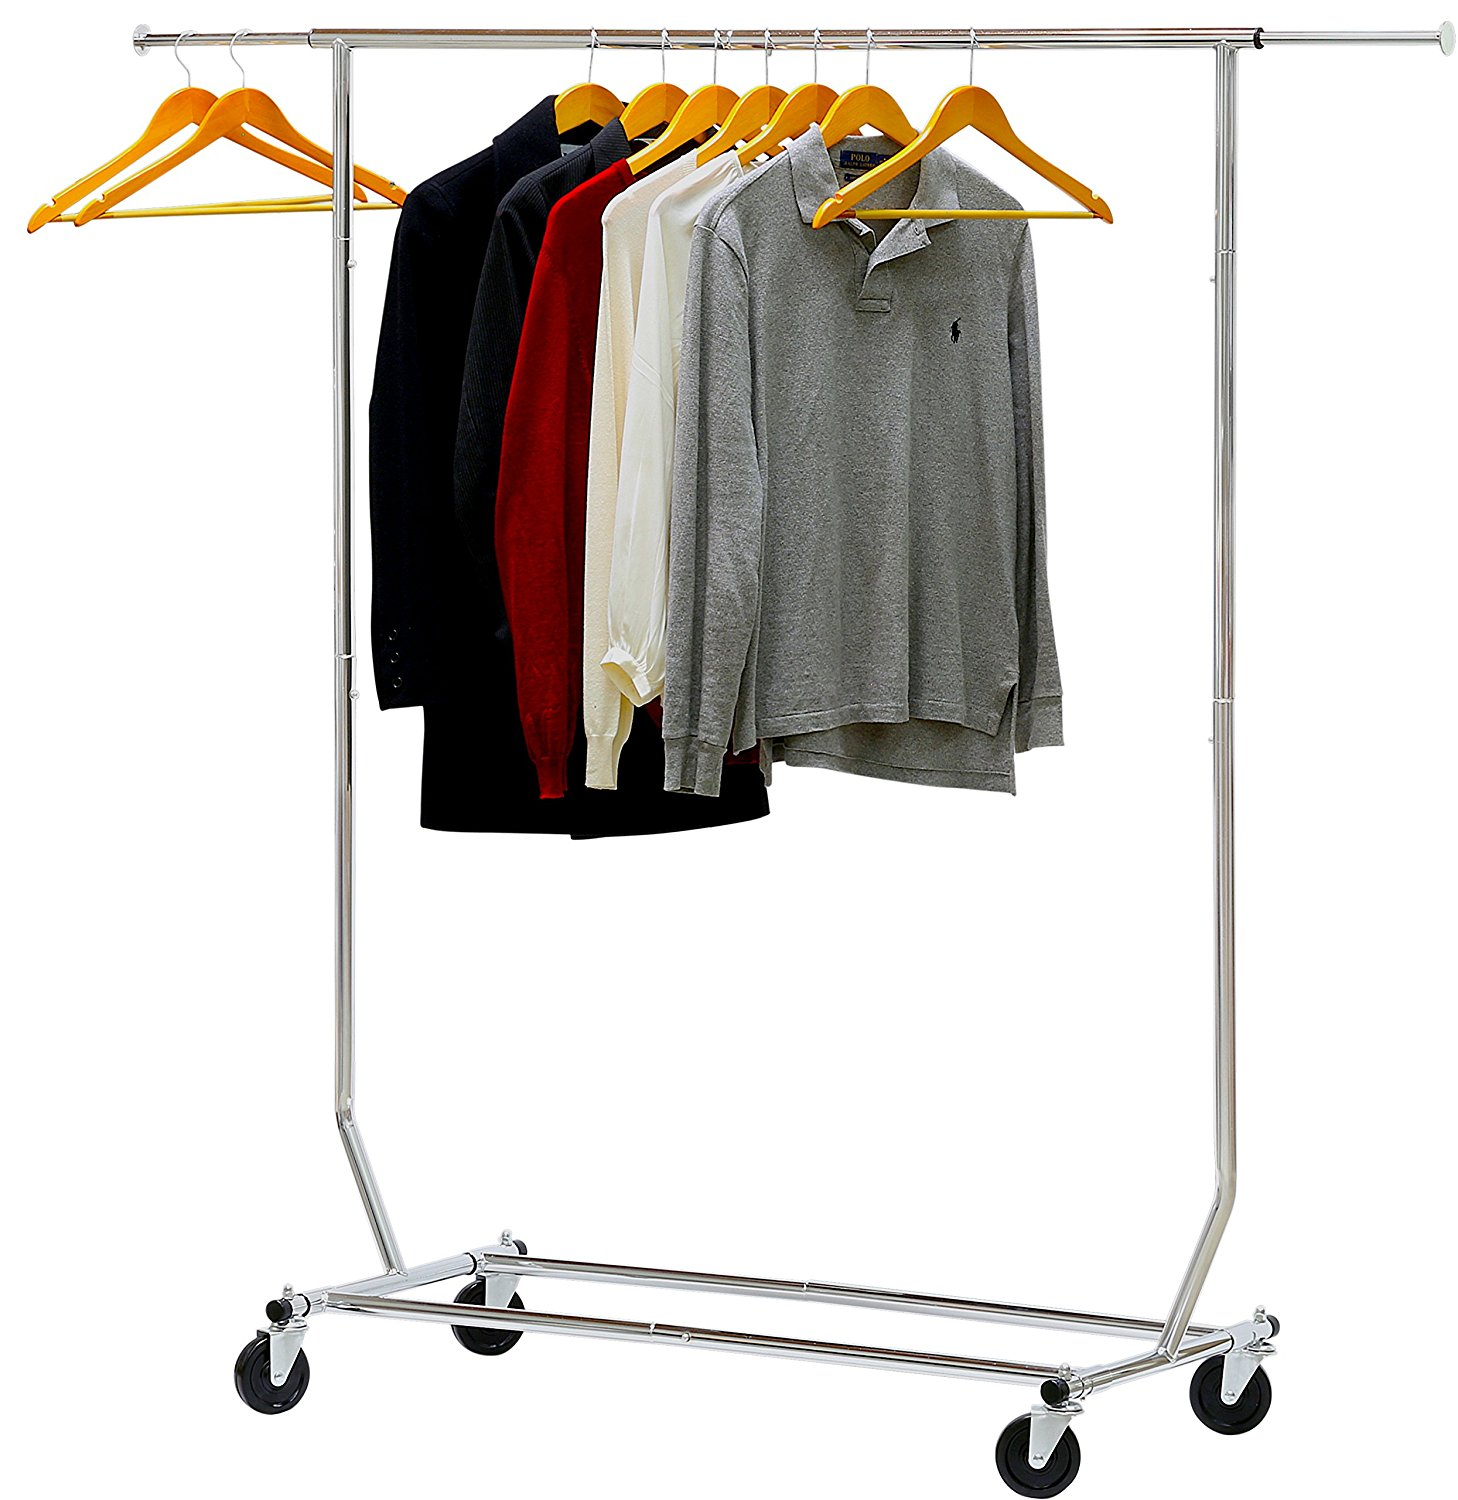 Simple Houseware Commercial Grade Clothing Garment Rack - Chrome